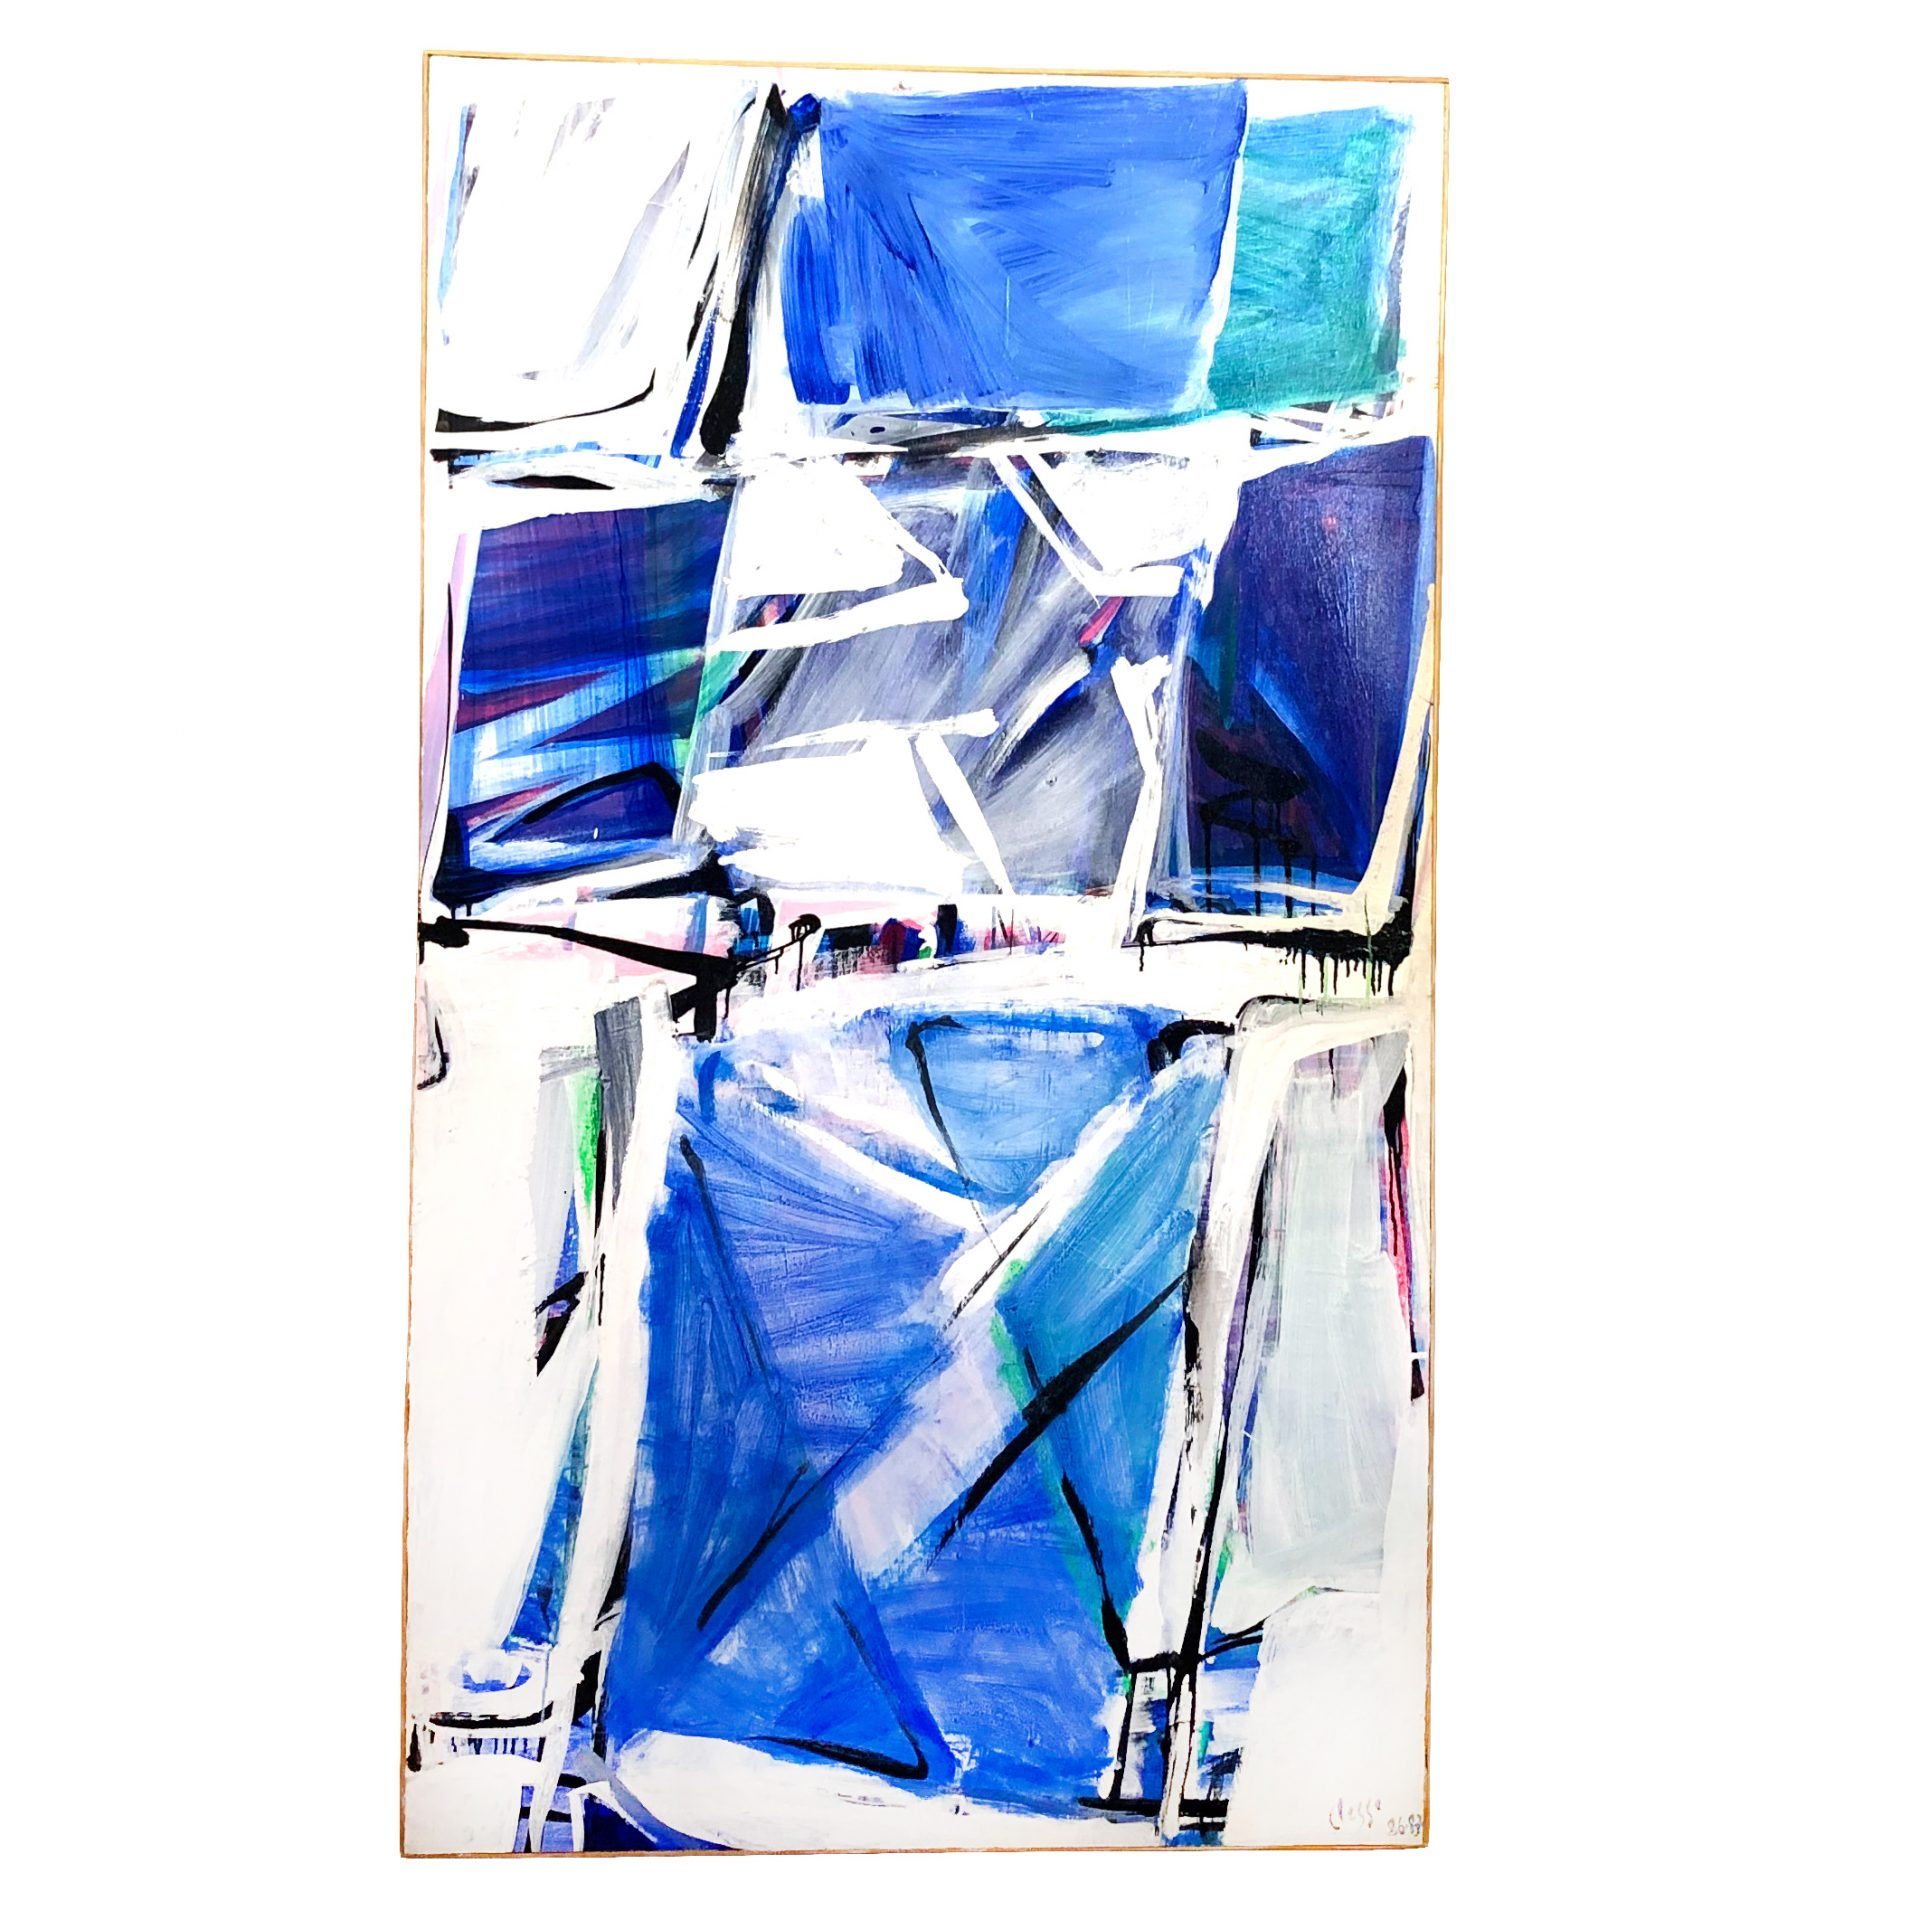 20th Century French Blue and White Abstract Painting by Daniel Clesse